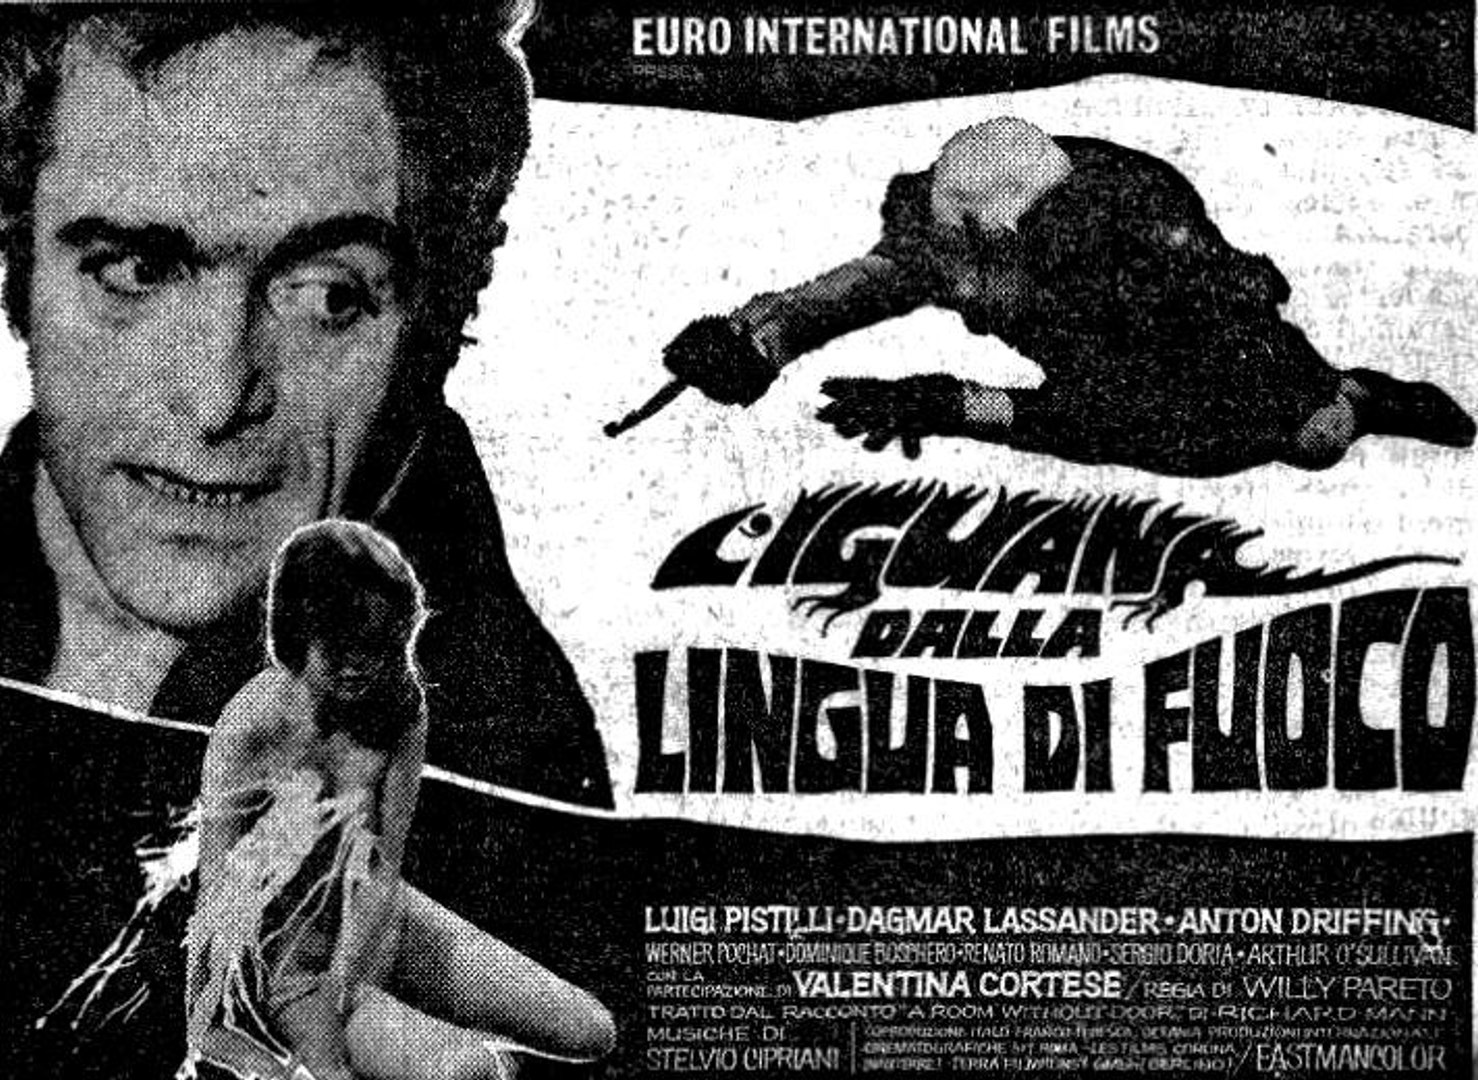 (Italy 1971) Stelvio Cipriani - The Iguana With The Tongue Of Fire